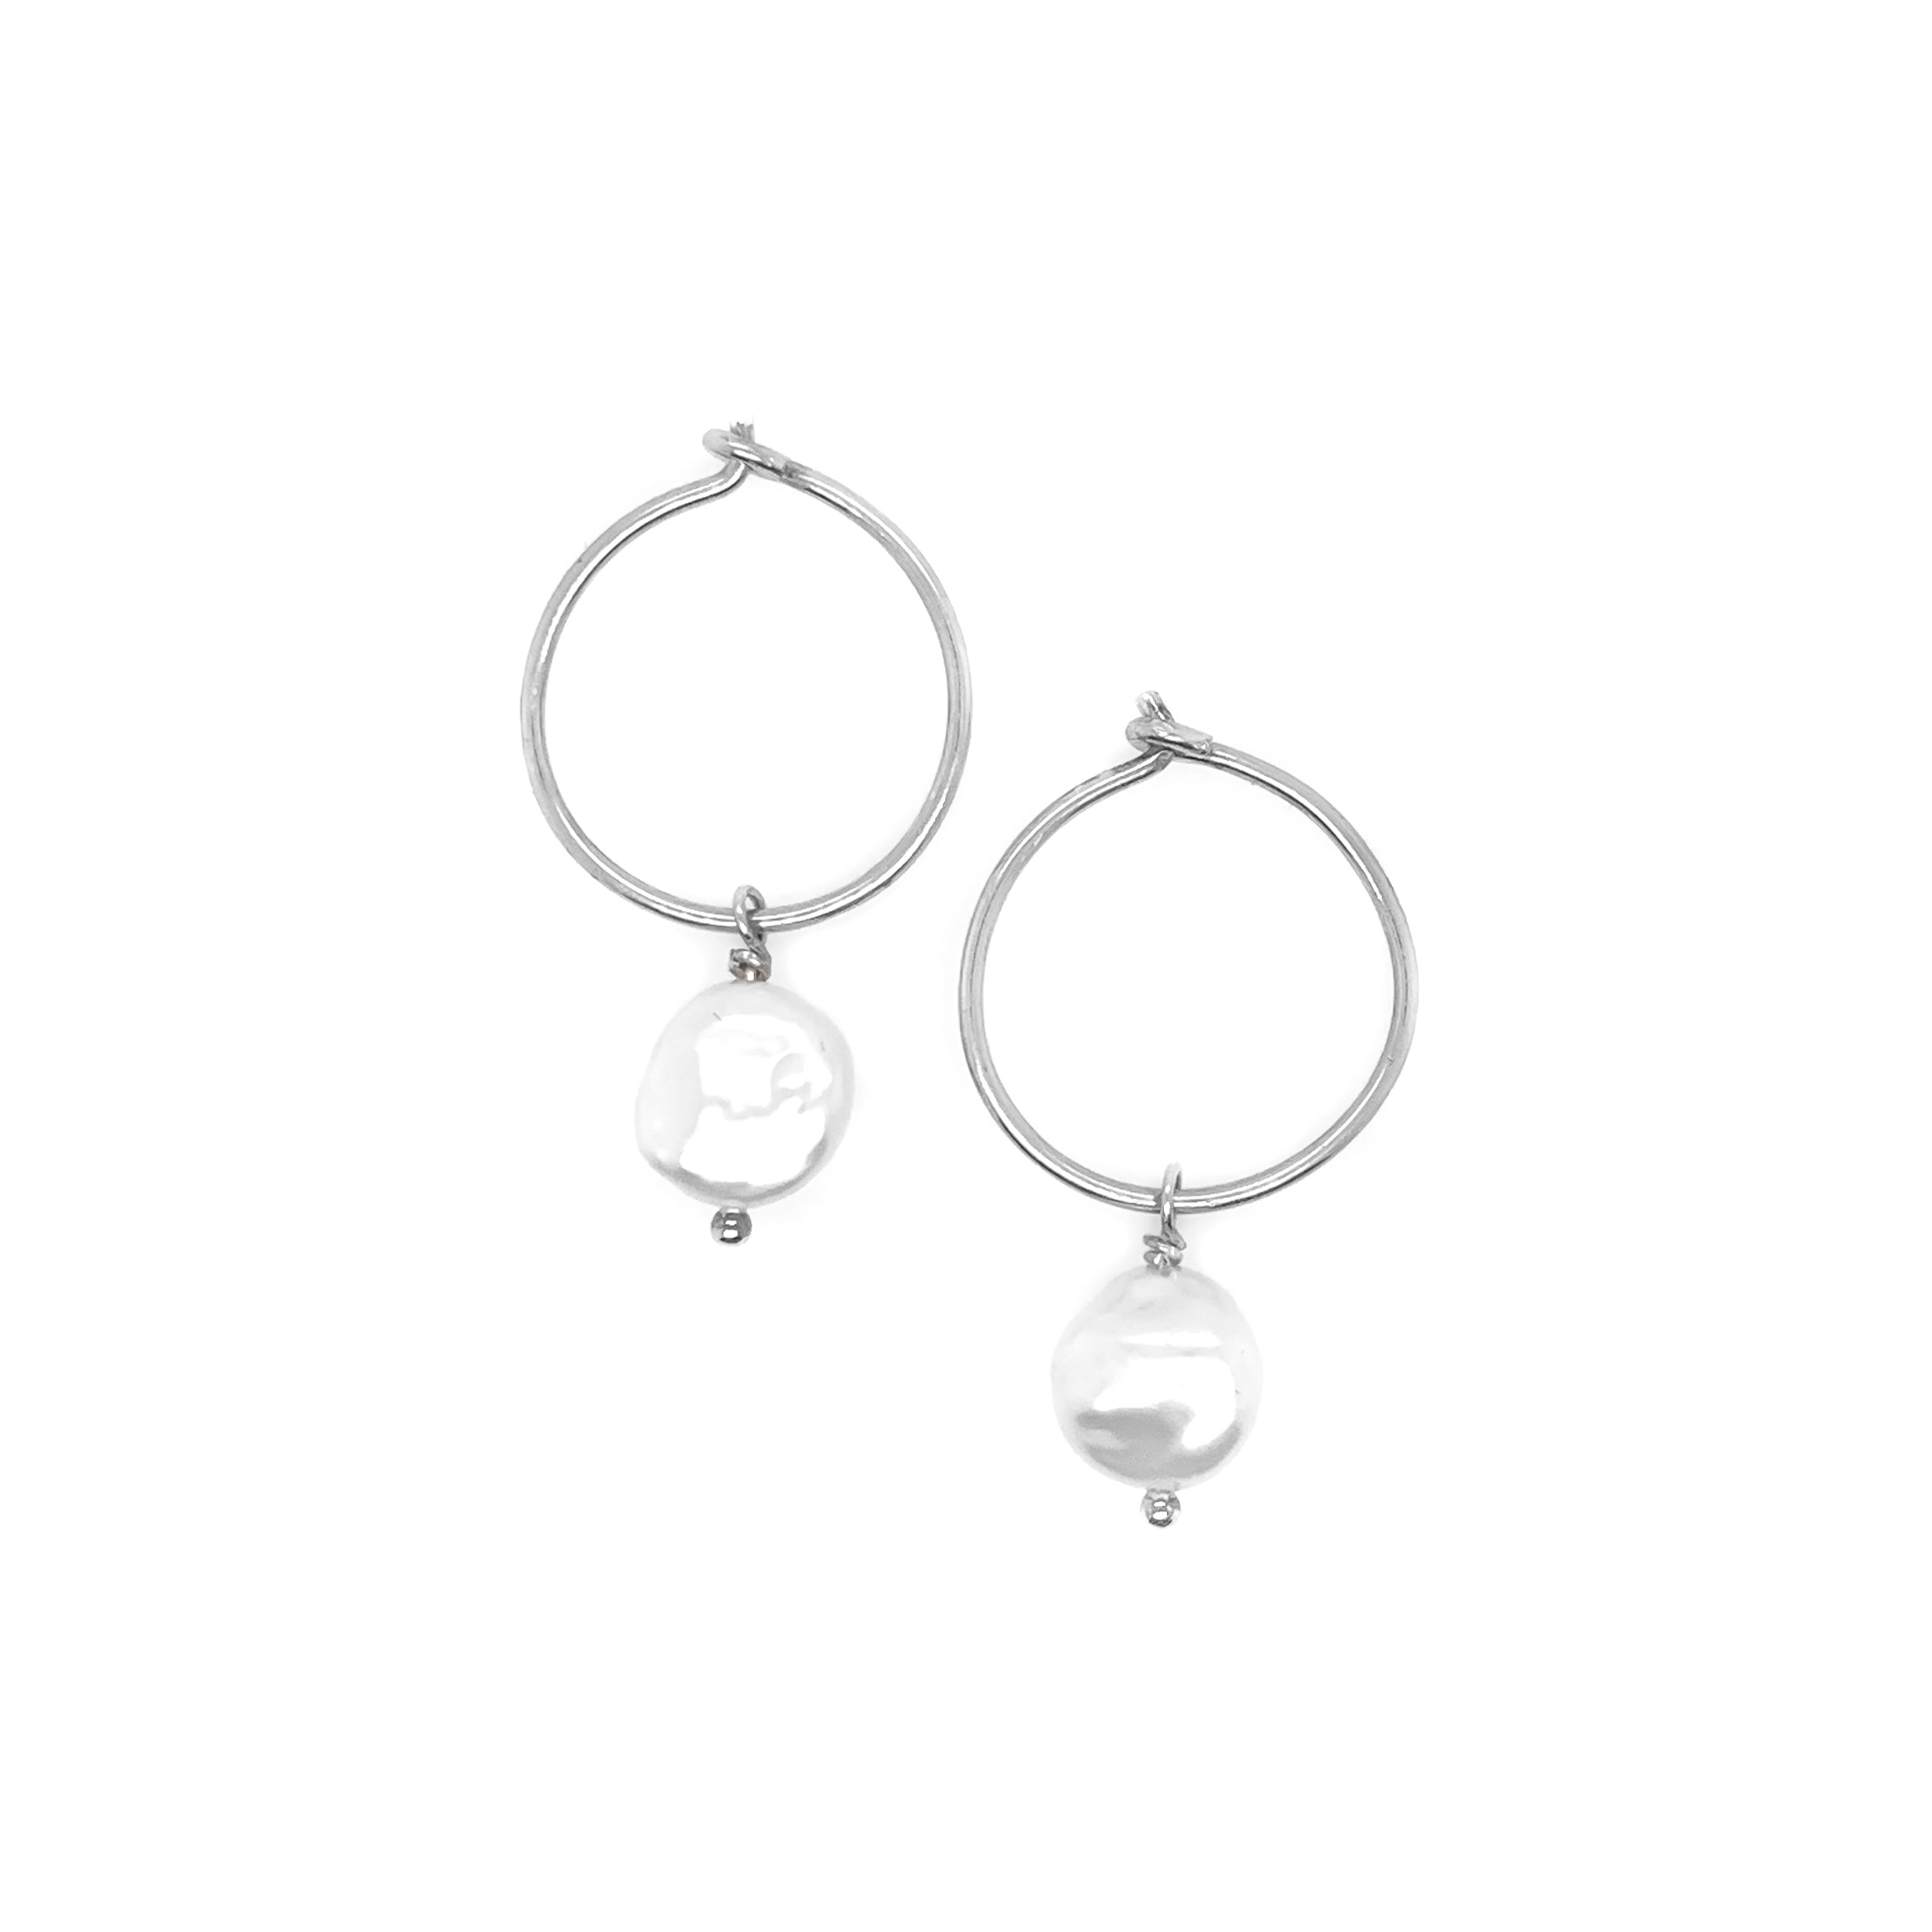 NIPIY EARRINGS - Sterling Silver